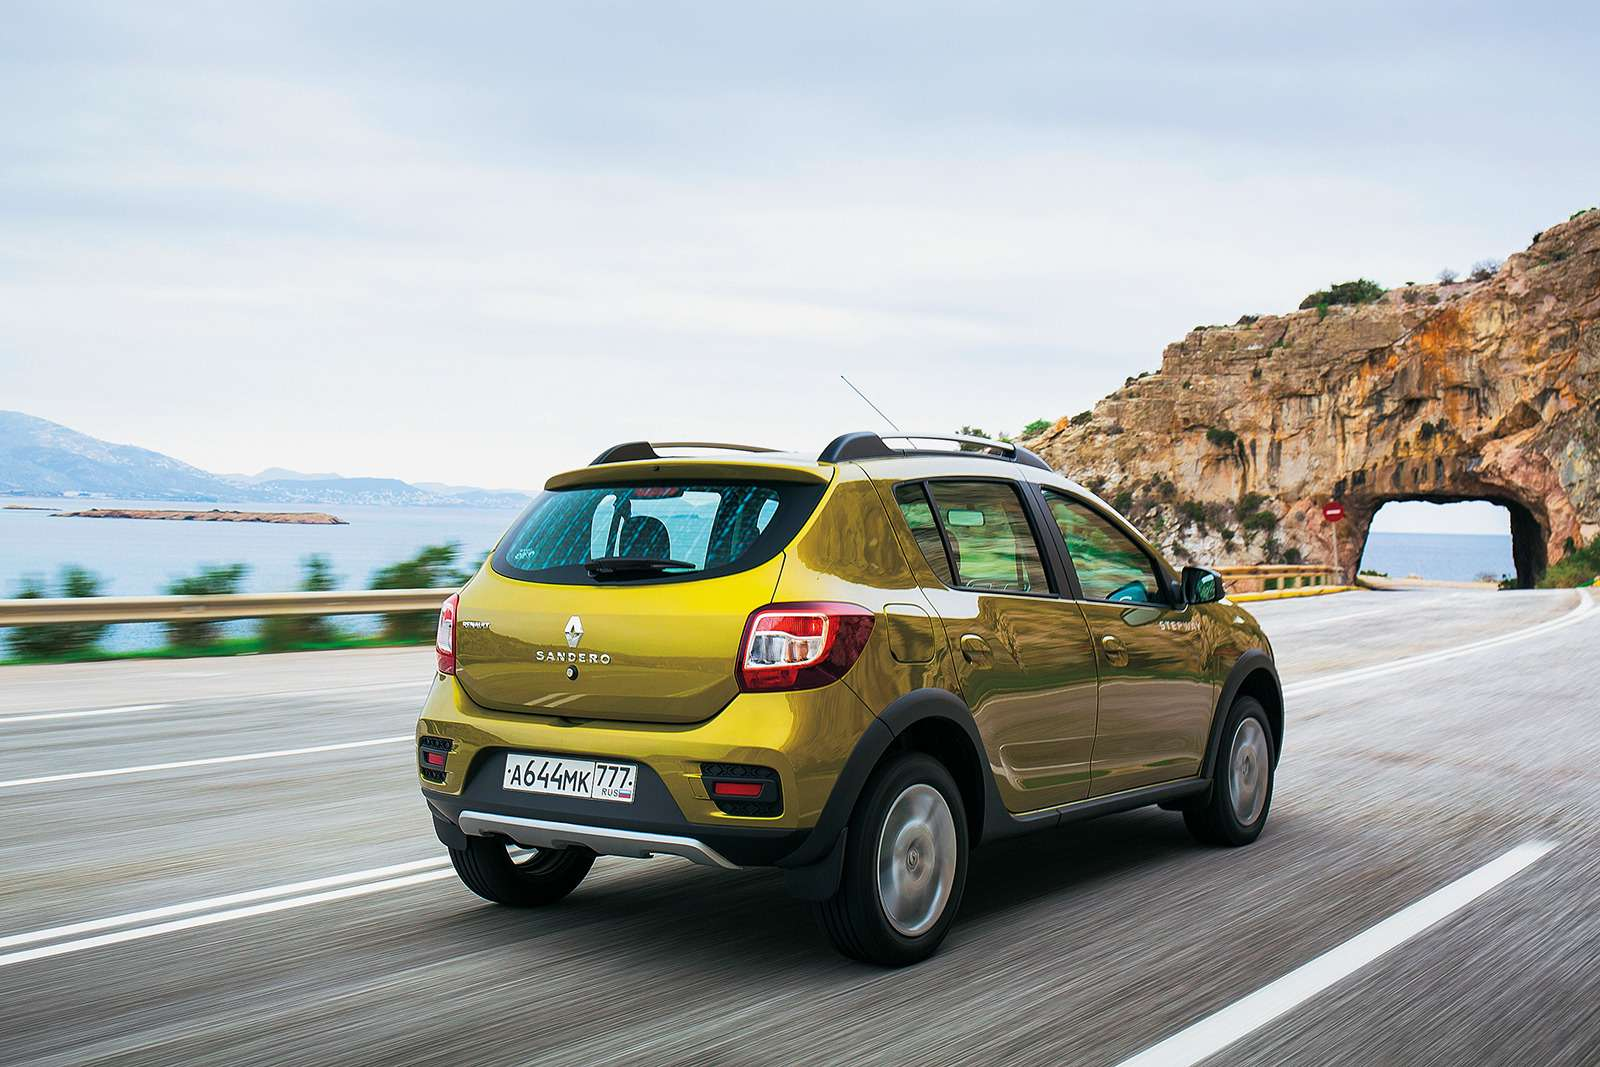 02 zr stepway_zr 02_15-HDR